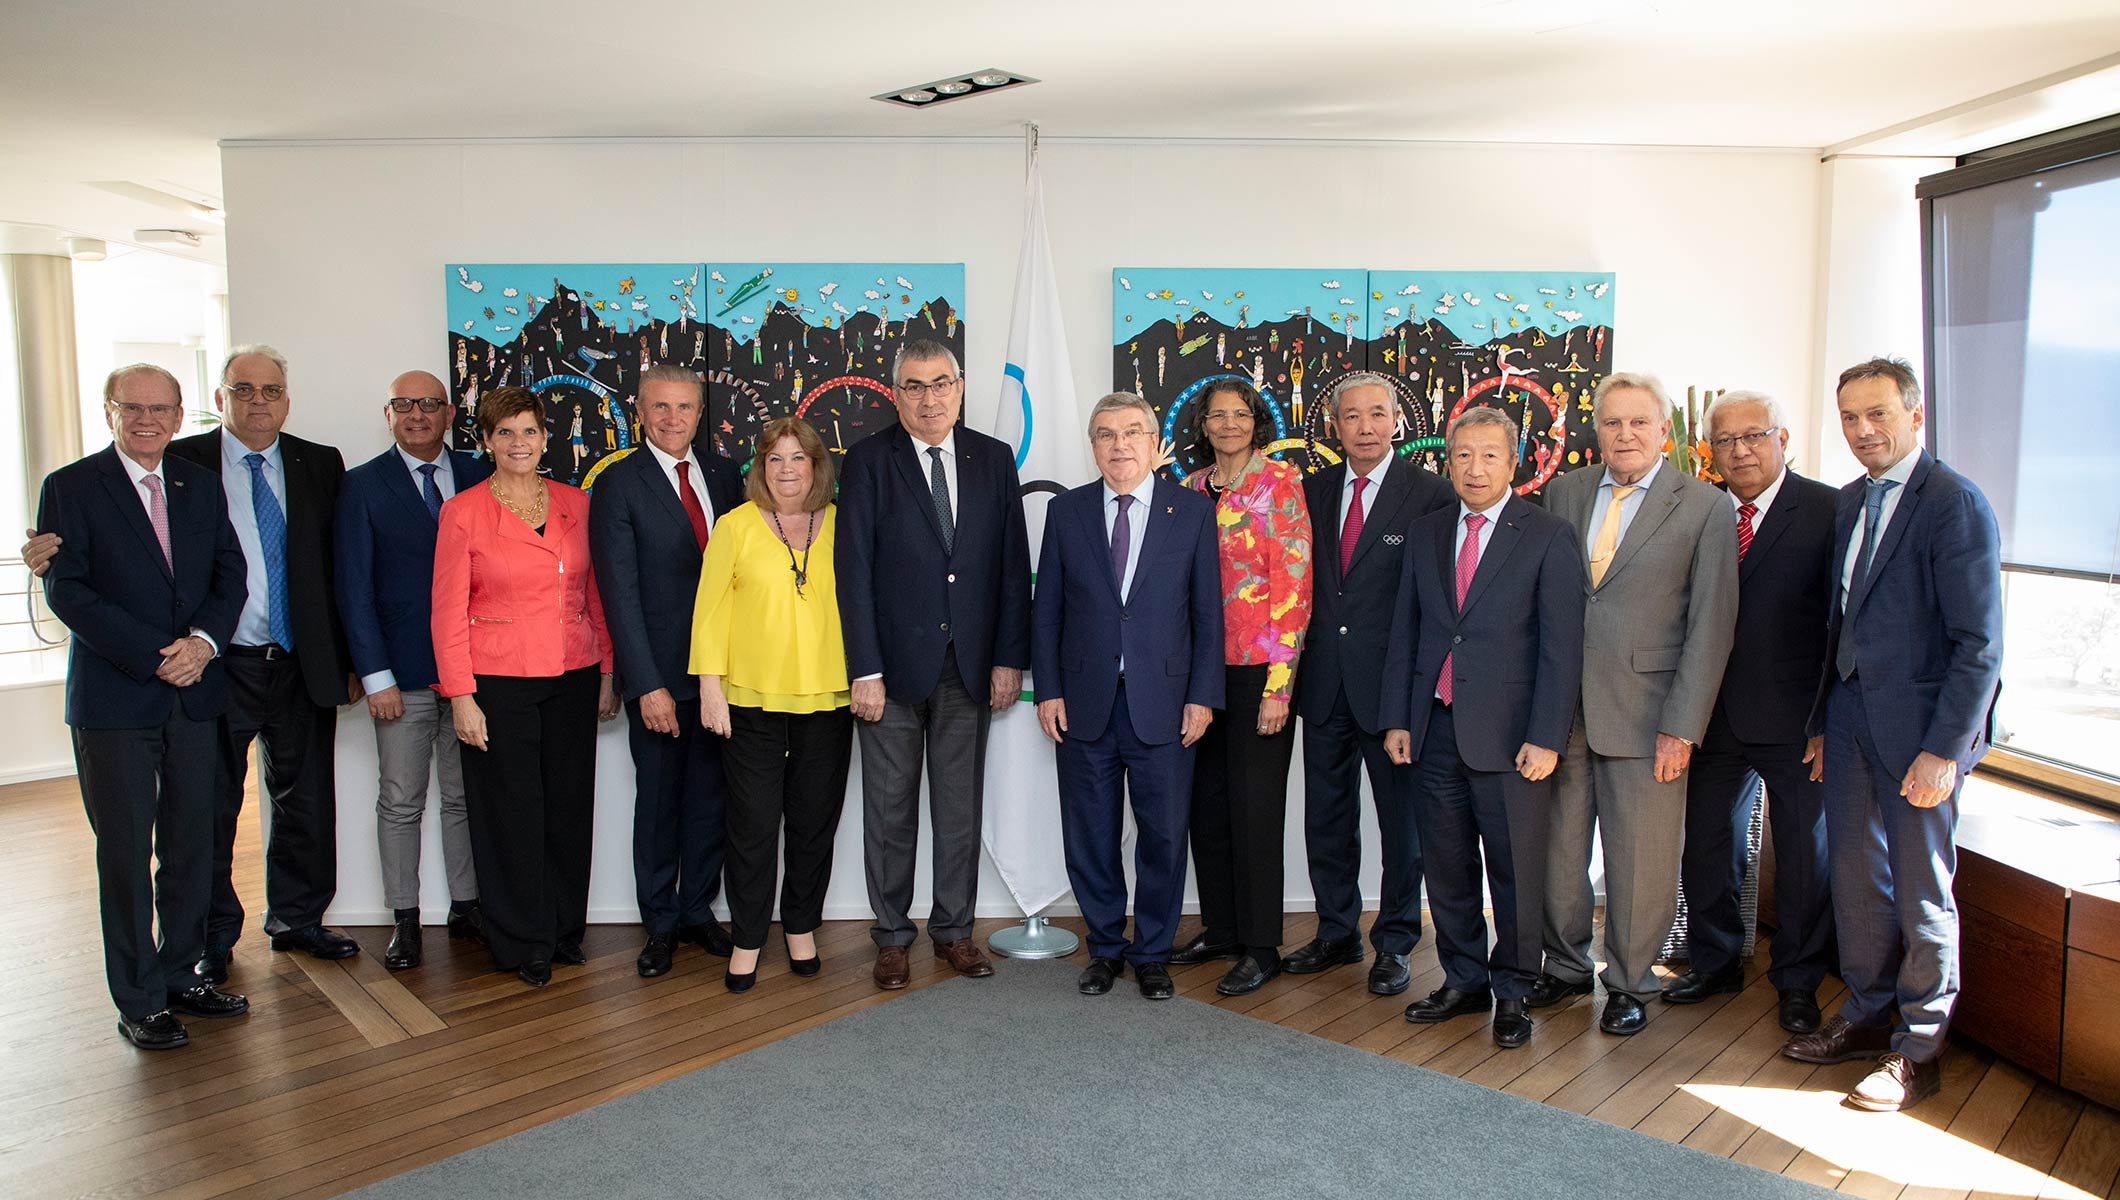 IOC Executive Board Lausanne 22 May 2019